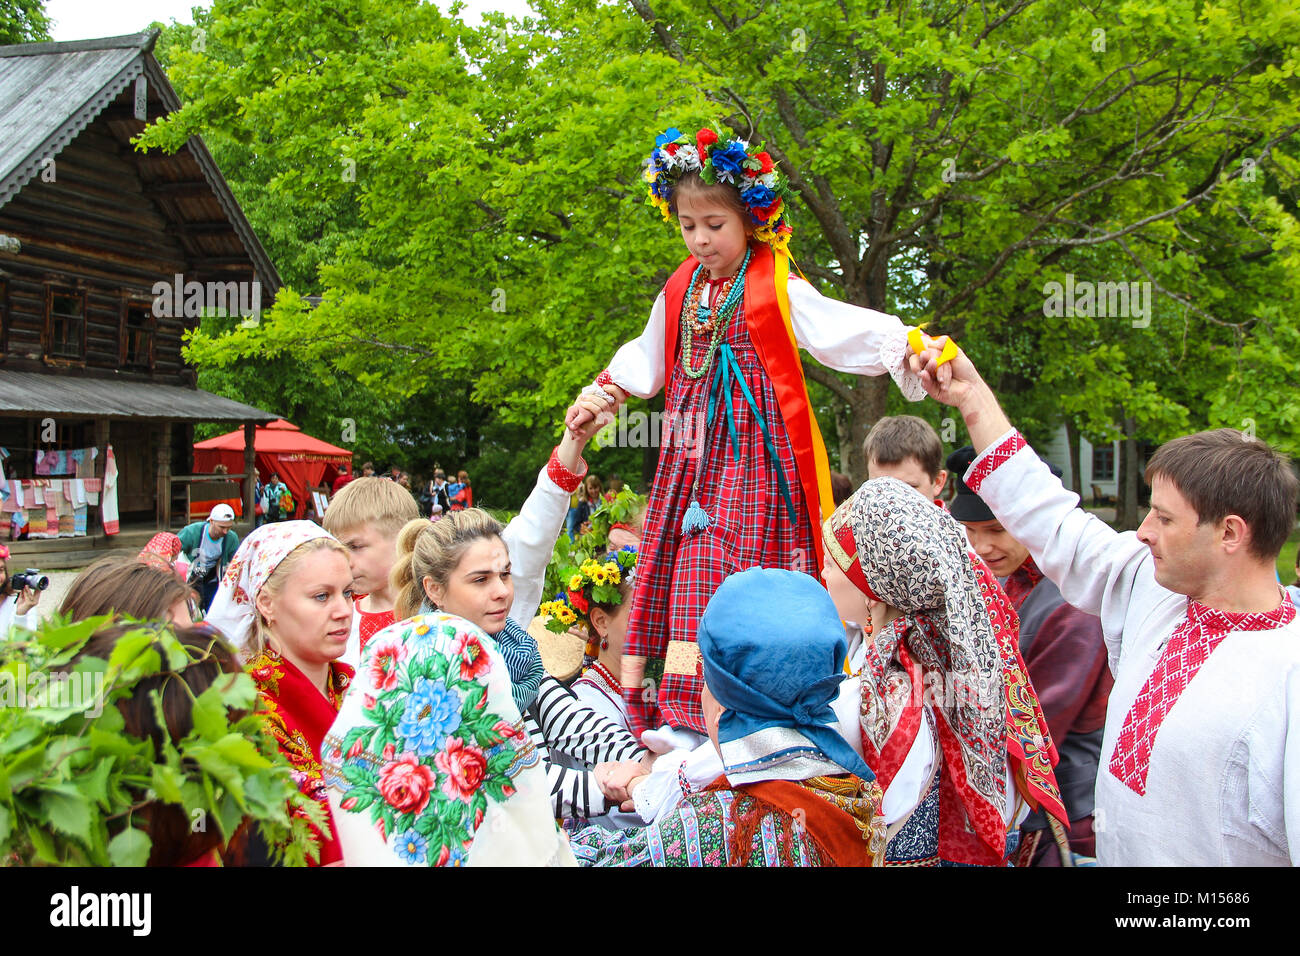 Reconstruction of the ancient Slavic pagan rites 'spike' / 'walking spikelets.' Girls and women - Stock Image